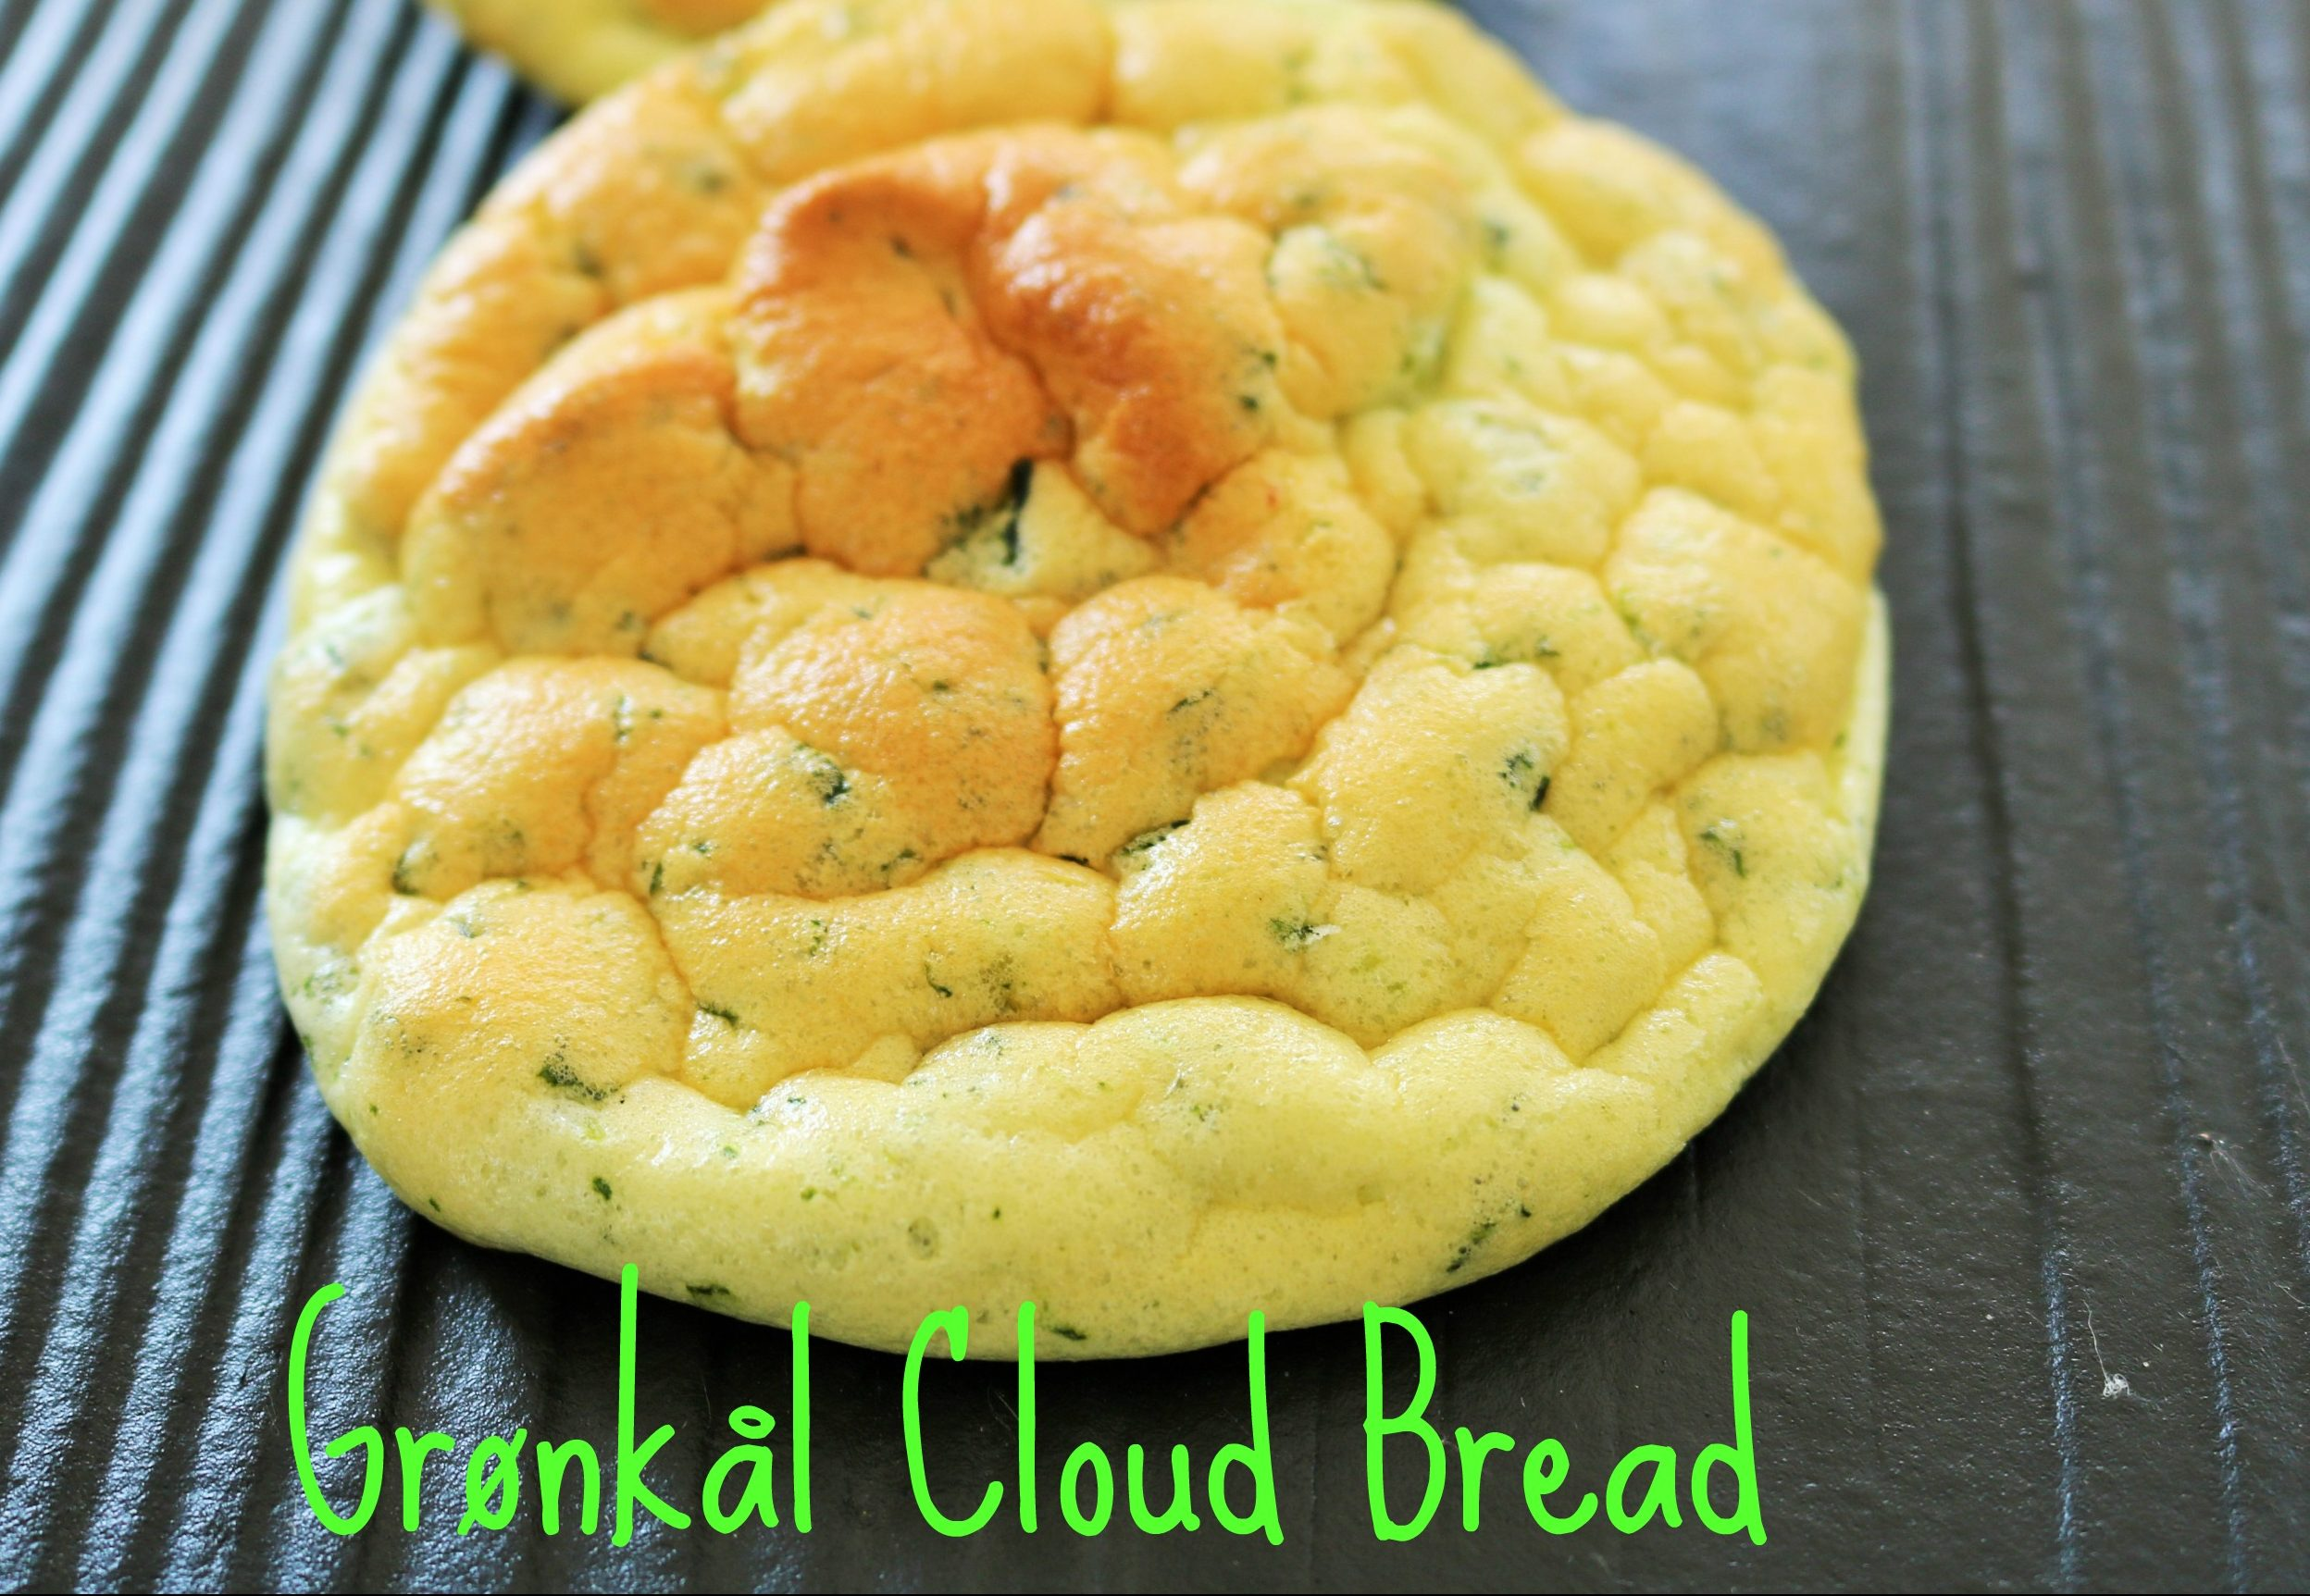 Grønkål Cloud Bread